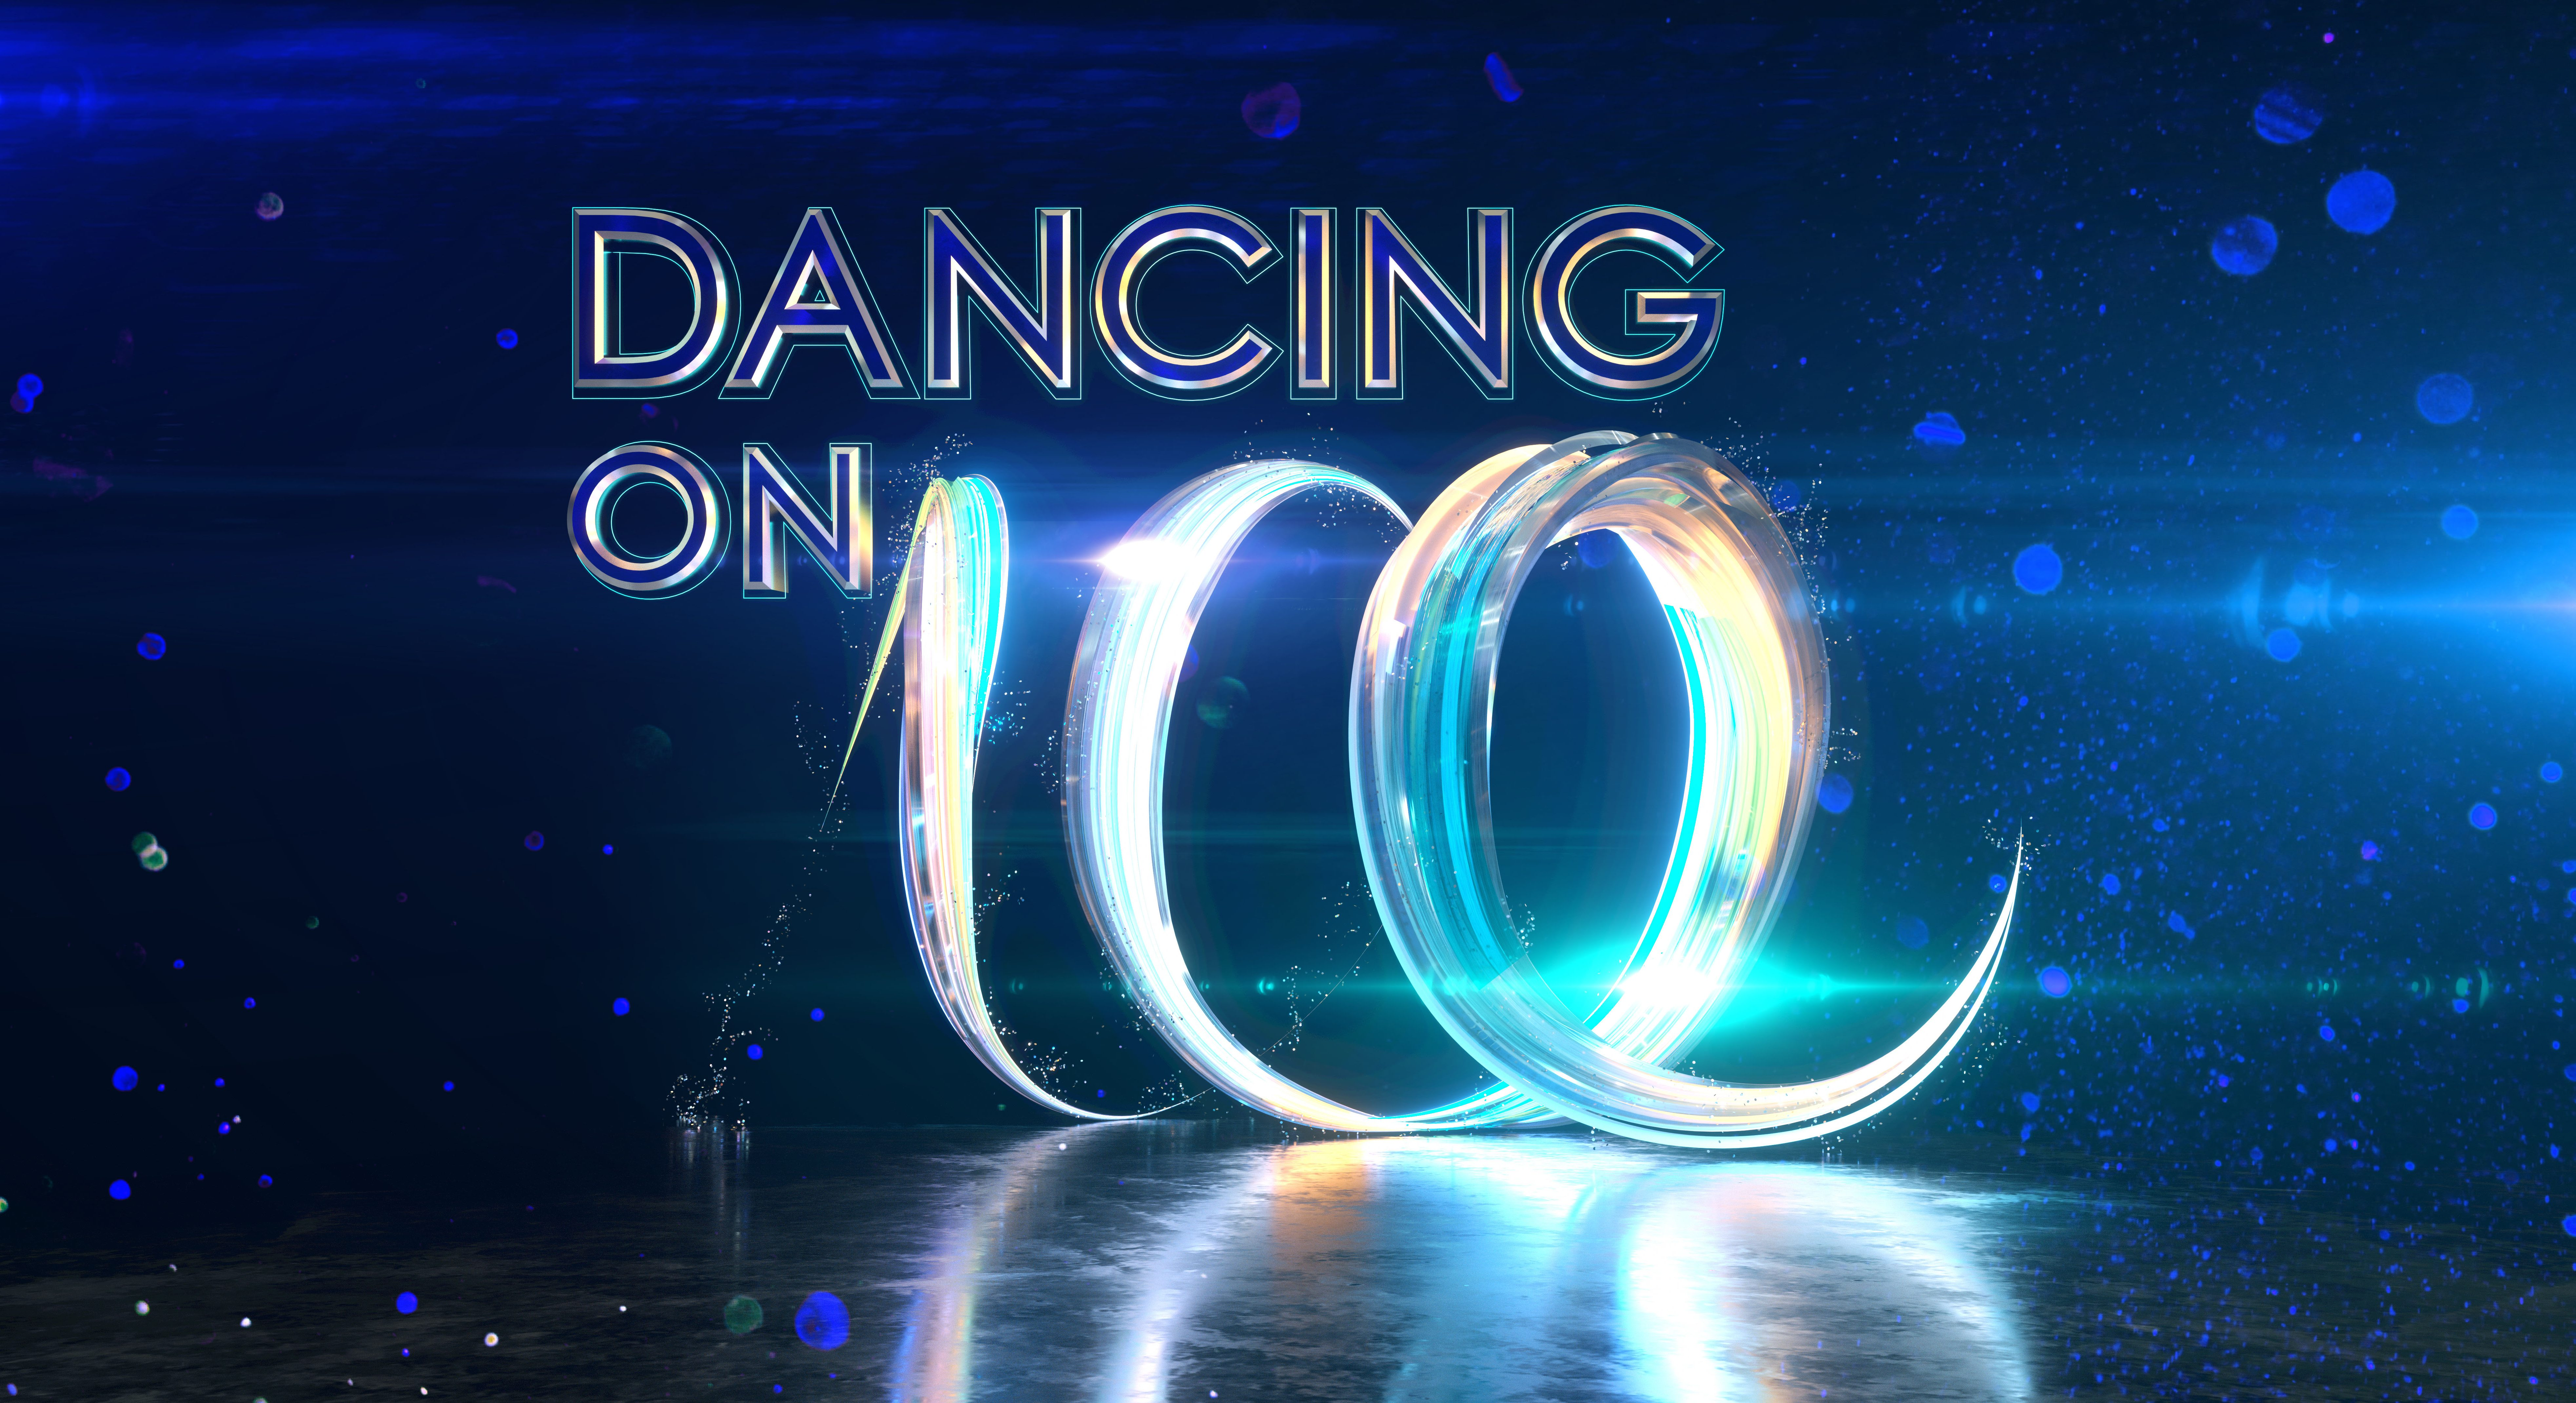 Dancing On Ice 2021 Celebrities Start Date And Everything We Know